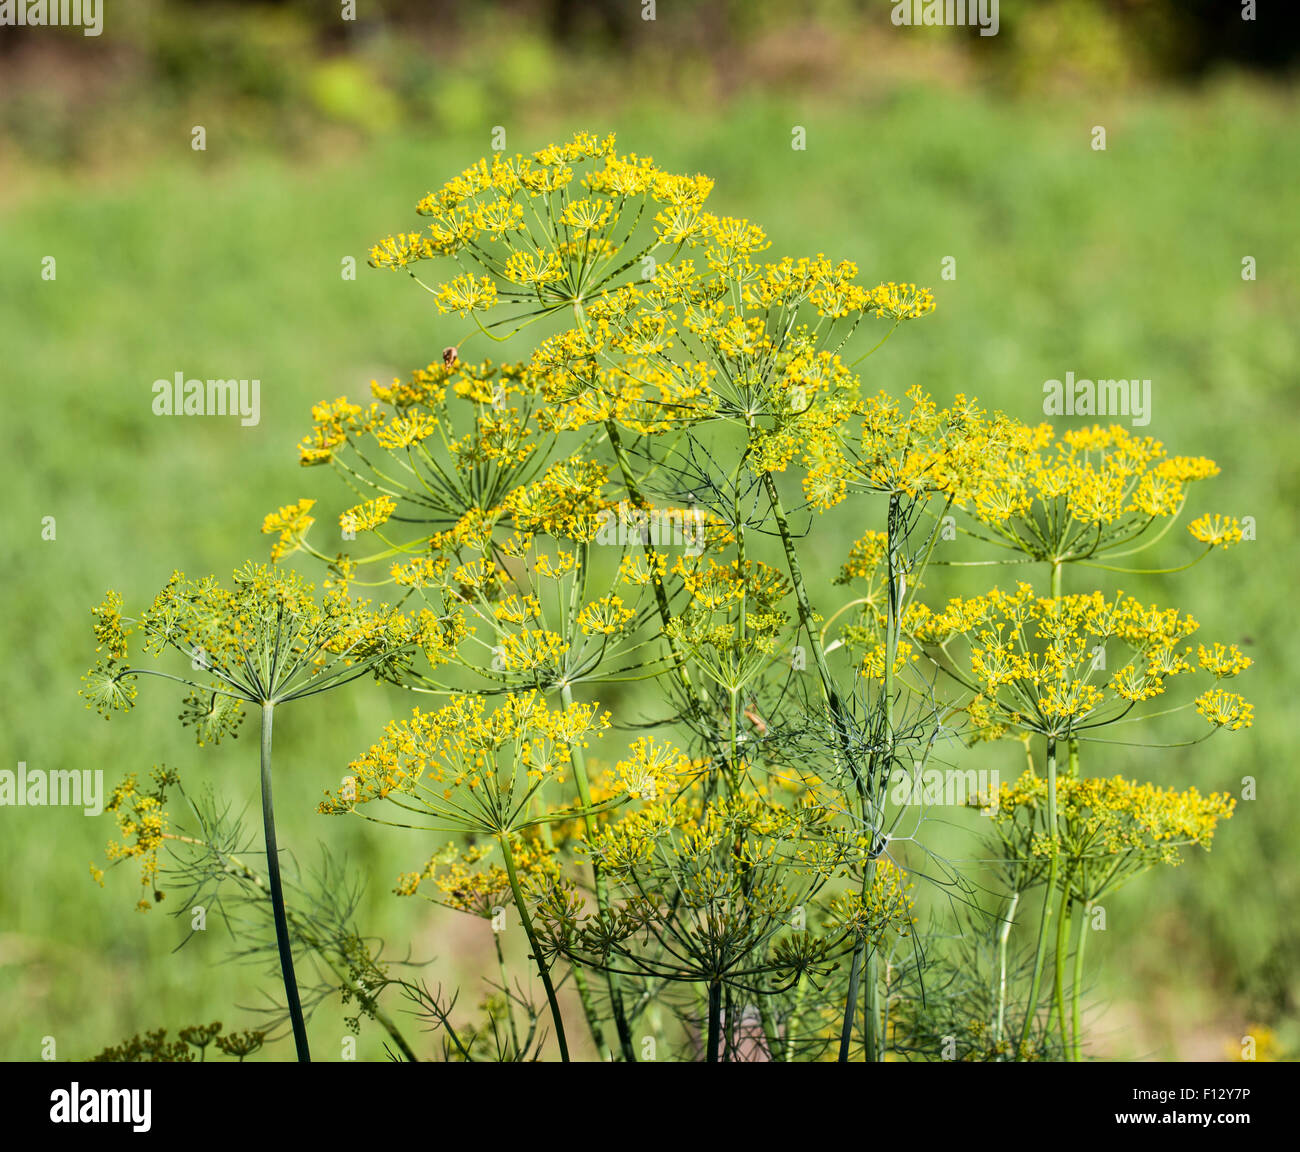 Fleurs d'aneth (Anethum graveolens) Photo Stock